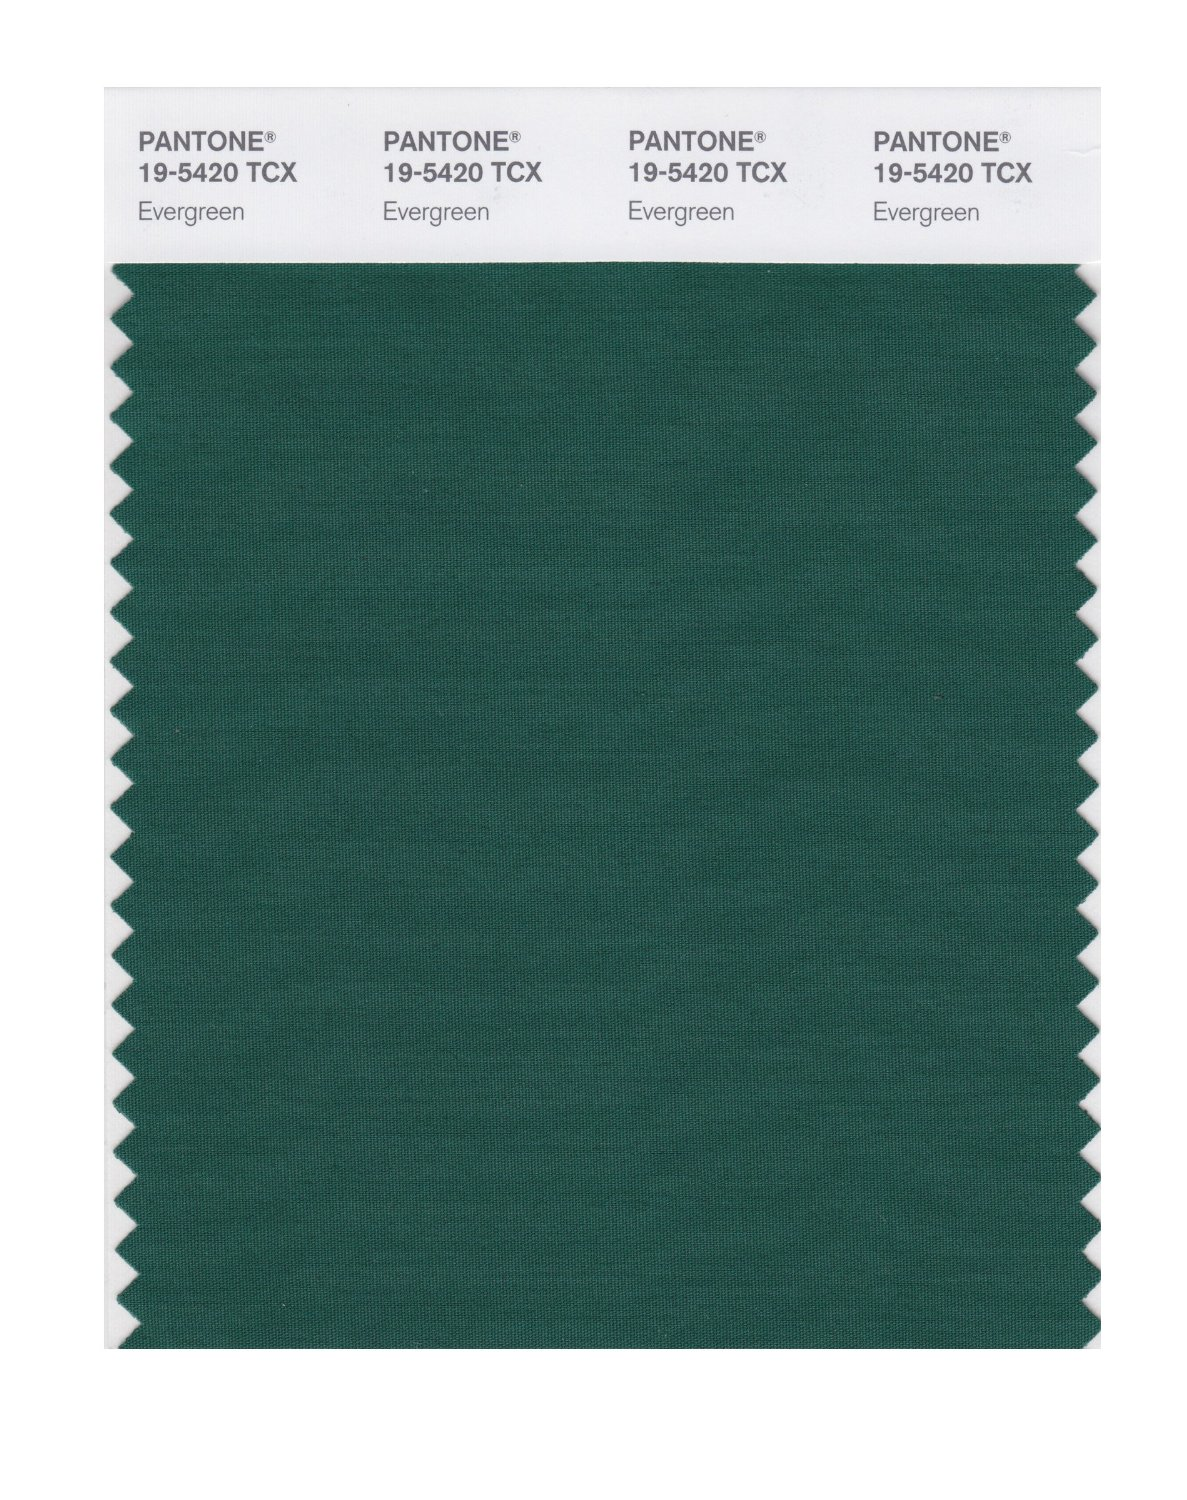 Pantone Smart Swatch 19-5420 Evergreen